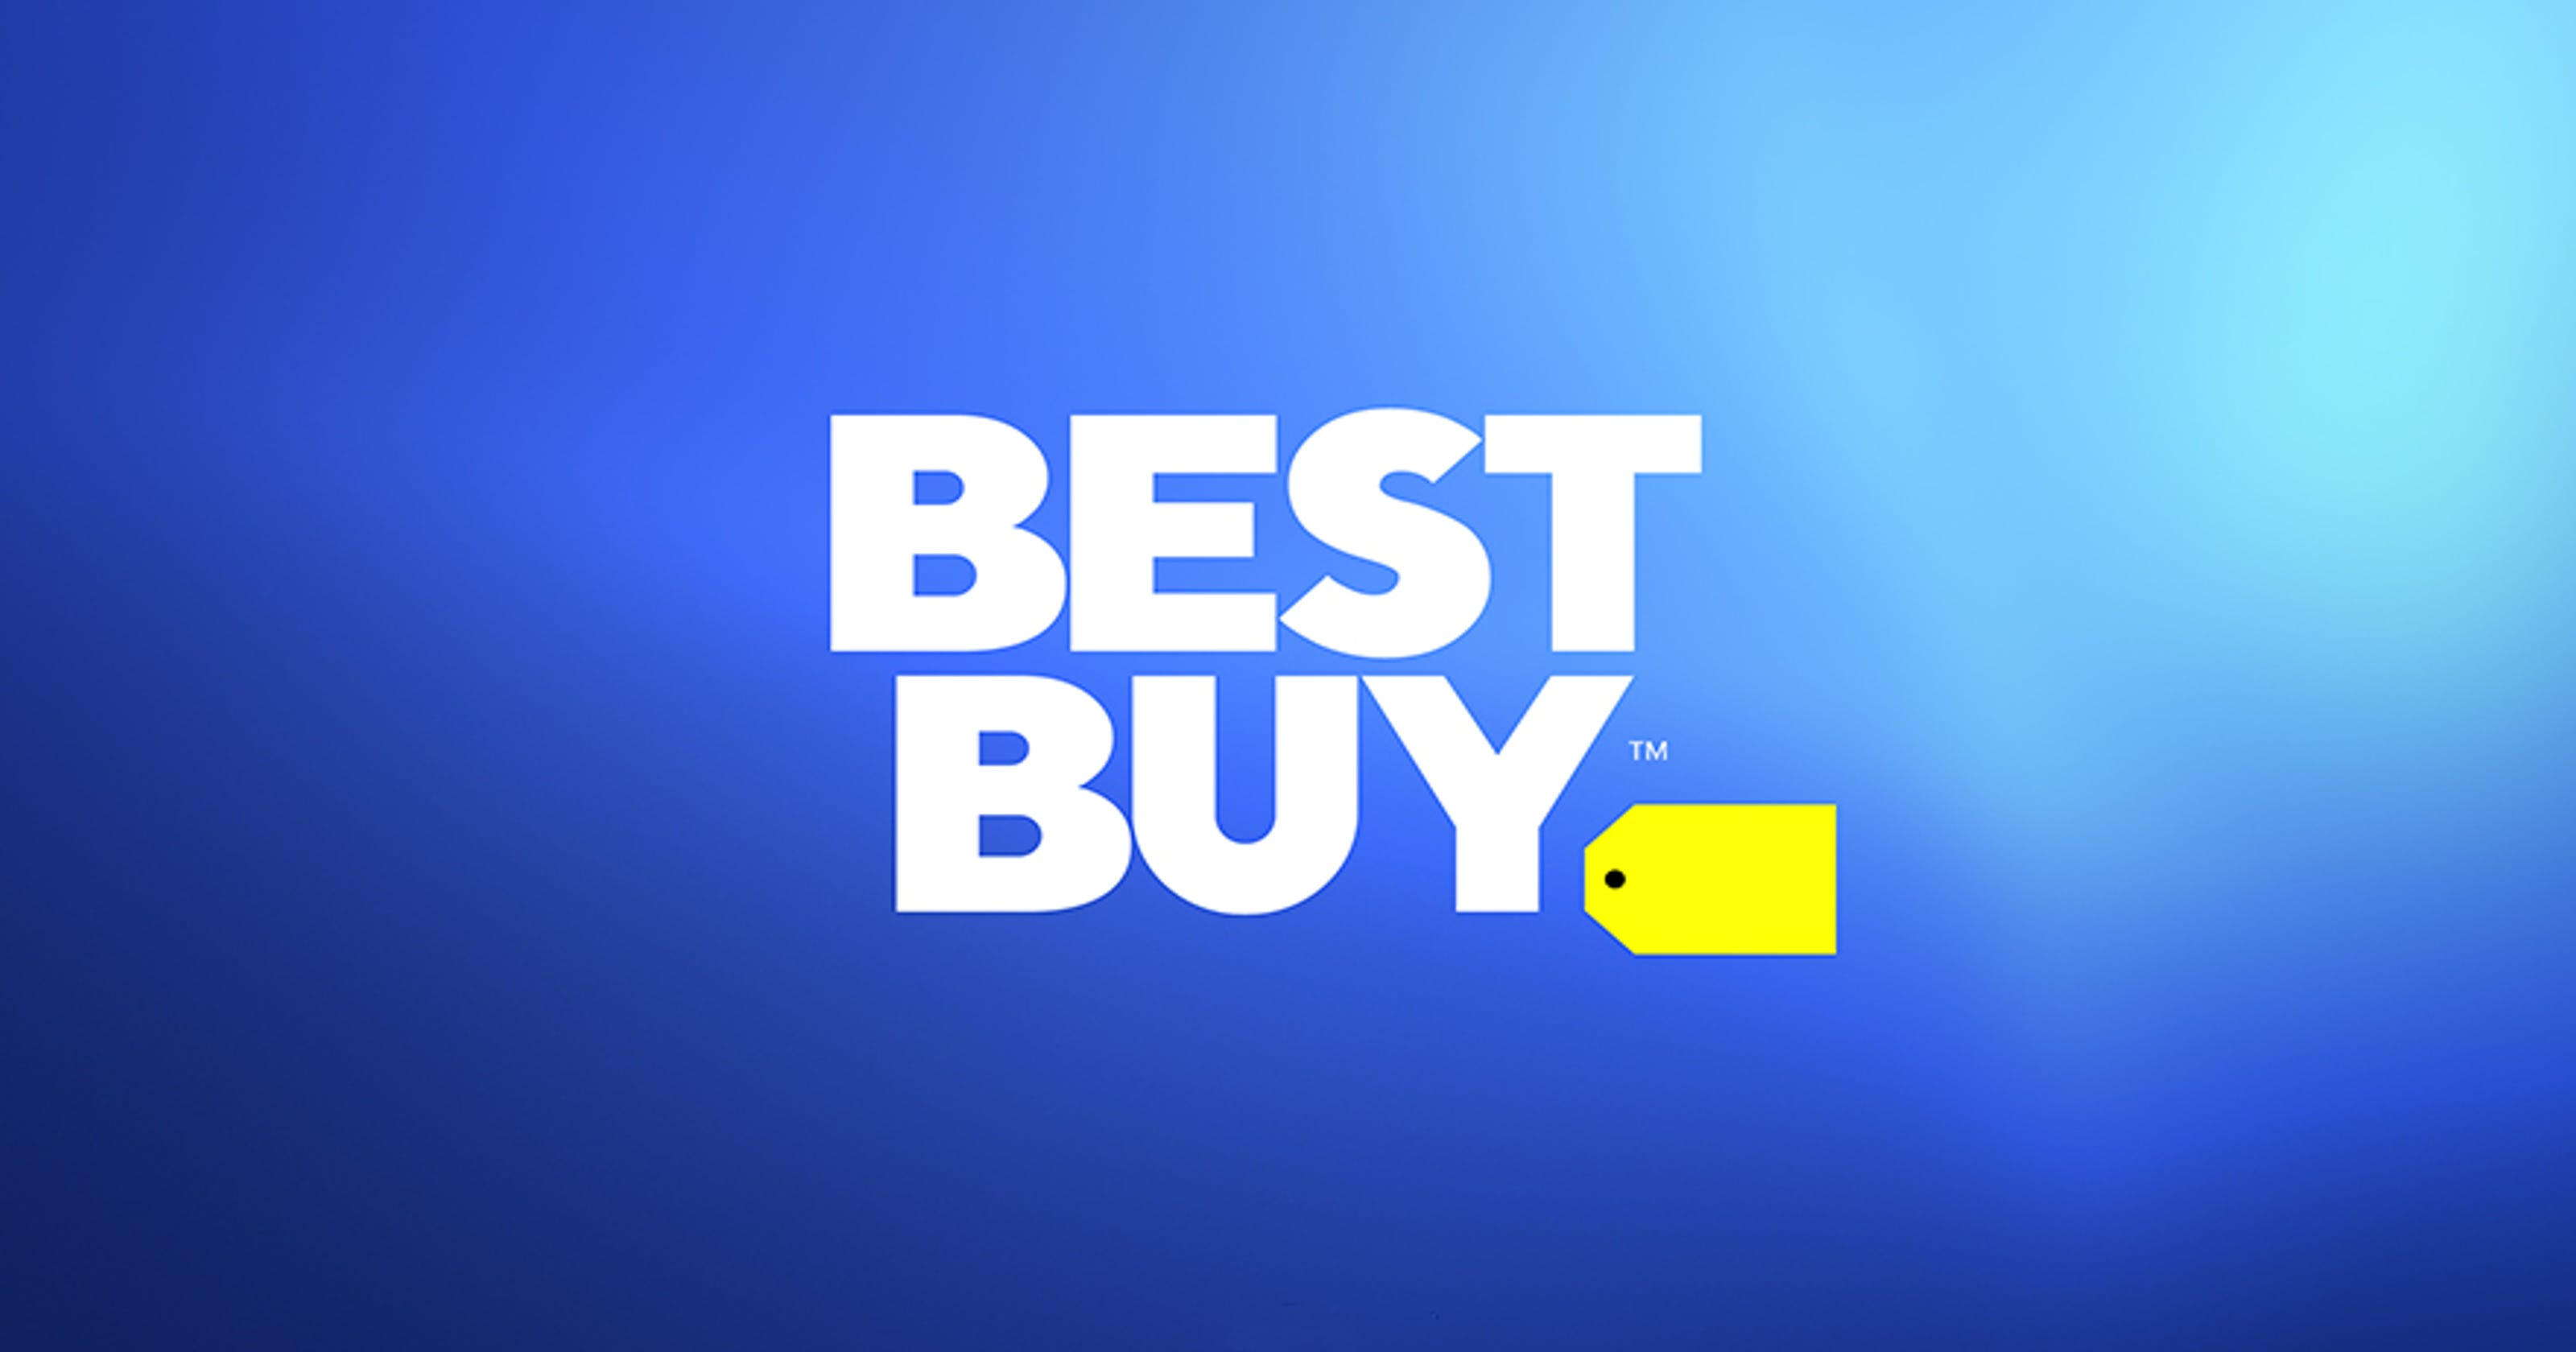 Best Buy Logo Gets Updated For First Time In Nearly 30 Years